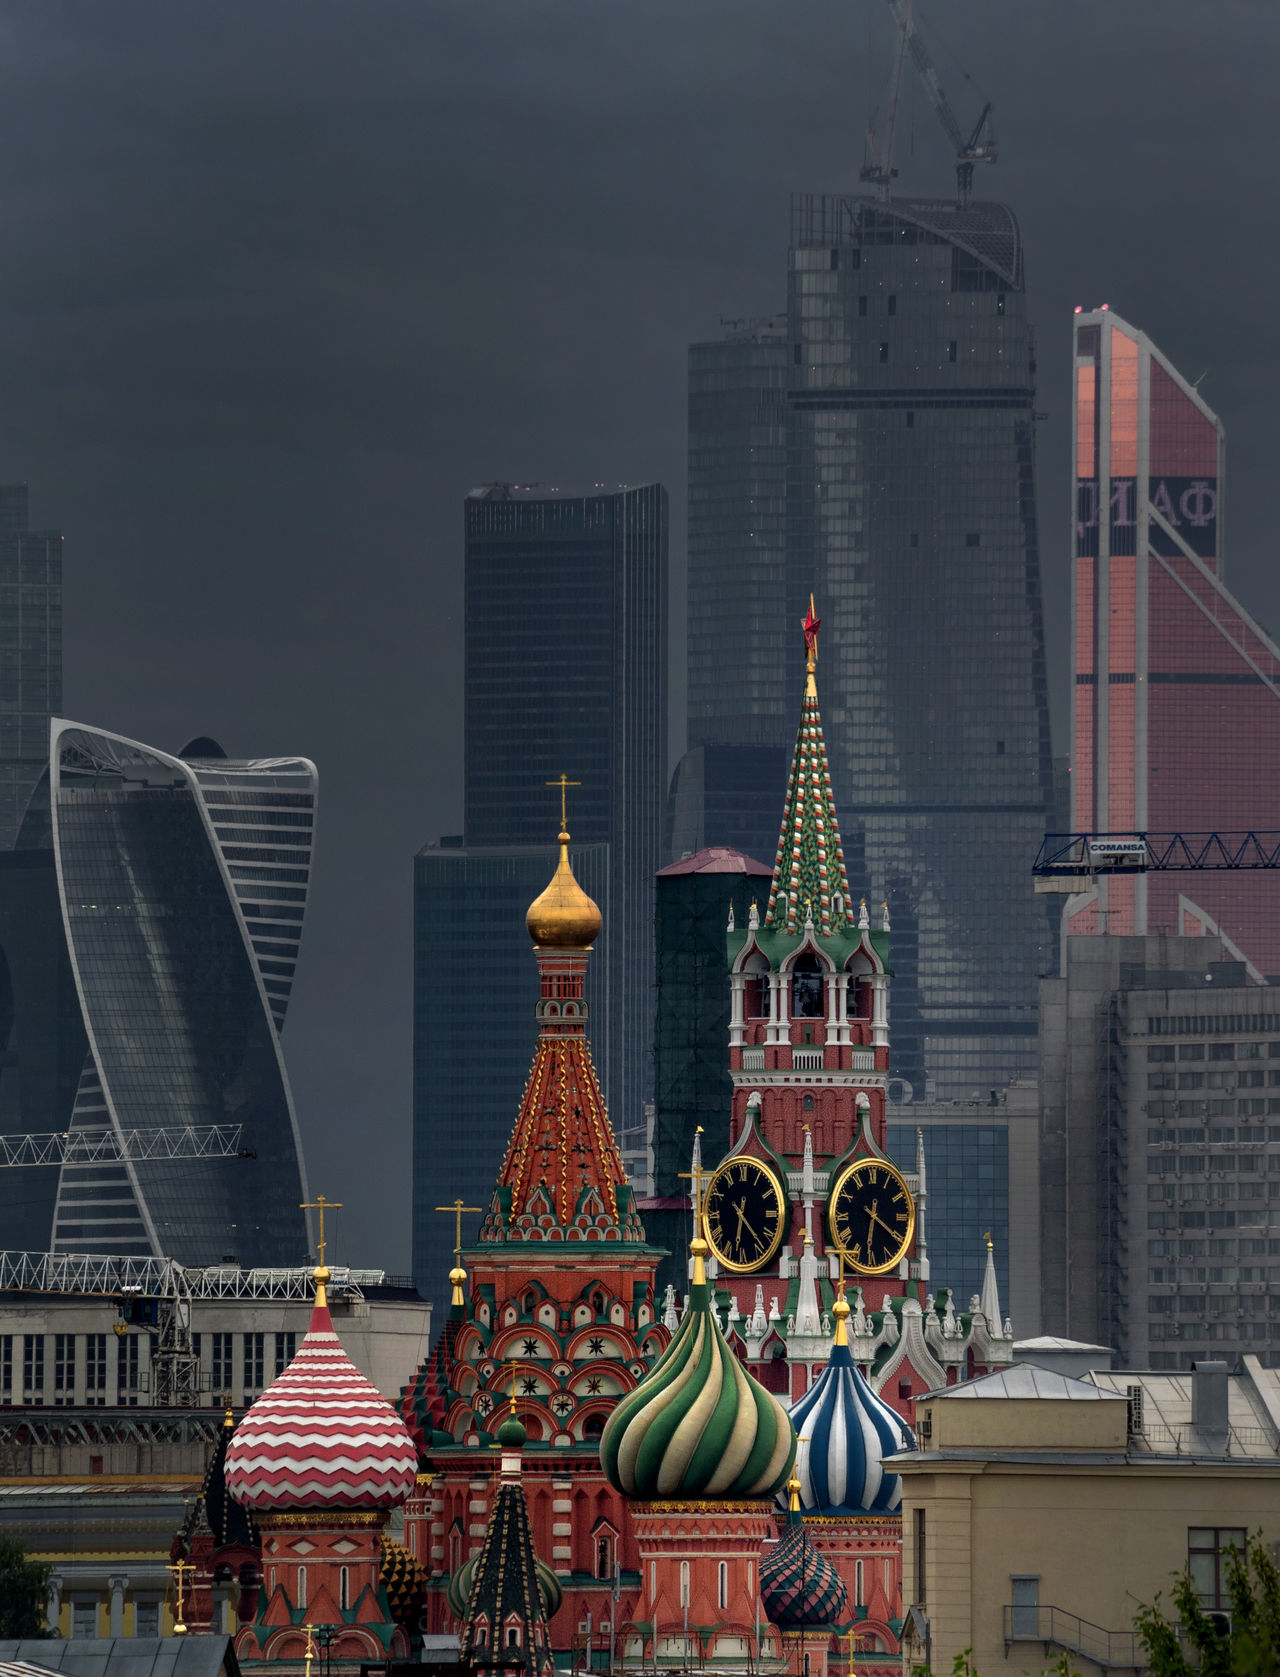 Moscow Red Square, St. Basil's Cathedral, Moscow City. Architecture Building Exterior Built Structure Church City City Life Community Dive Architecture, Cityscapes, Old Farther Thames, Skylines.  Façade Famous Place History International Landmark Low Angle View Moscow Moscow City Place Of Worship Red Square Religion Residential District Spirituality St. Basil's Cathedral In Moscow Tower